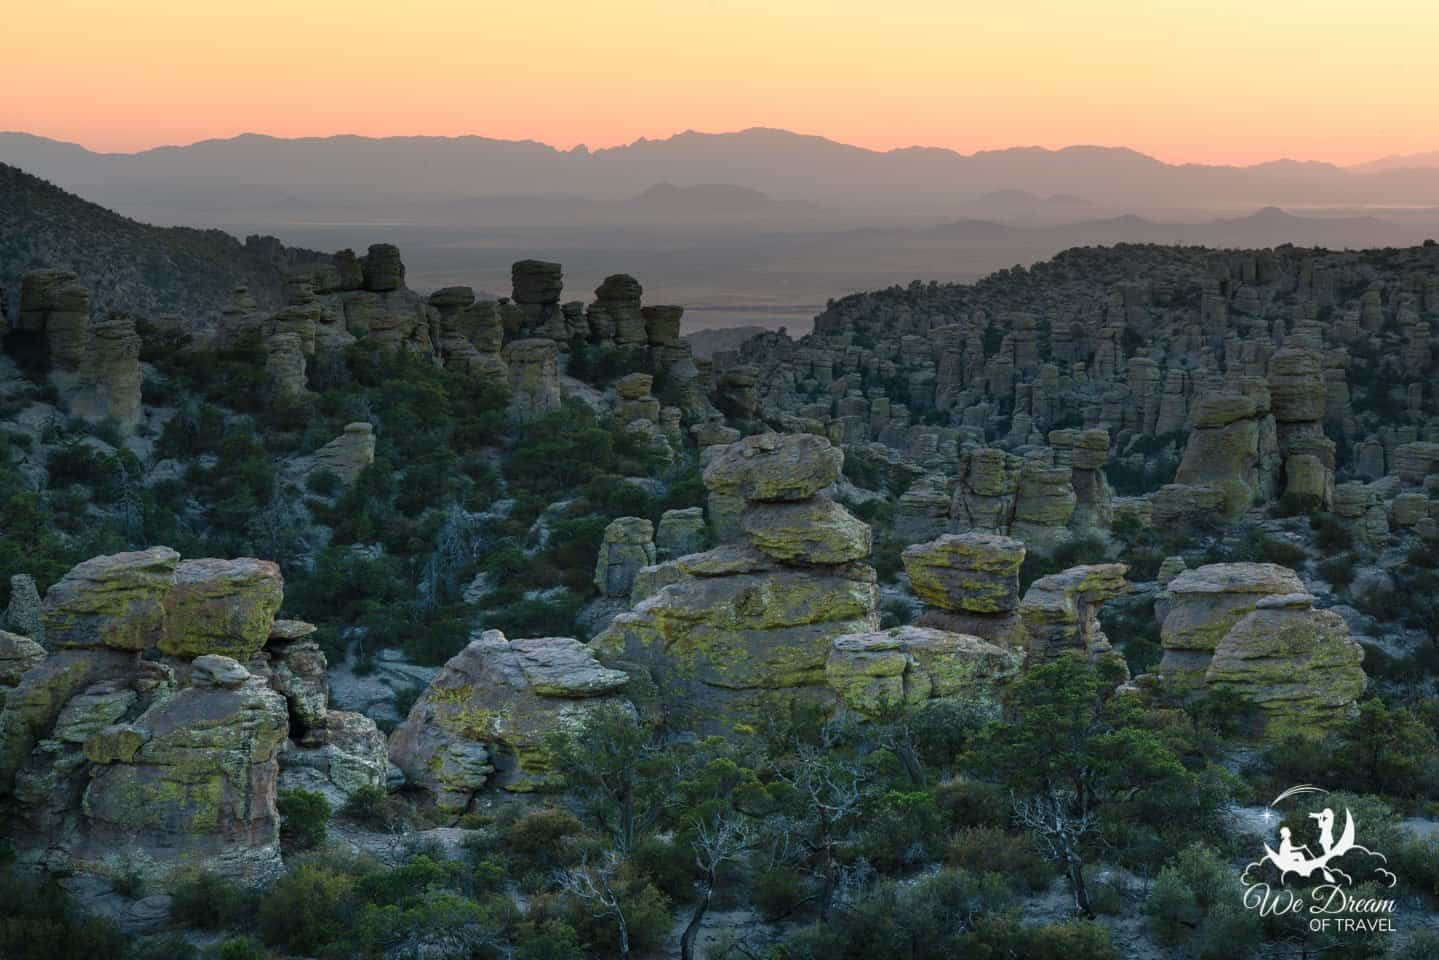 Massai Point is the most accessible viewpoint to enjoy sunset in Chiricahua National Monument.